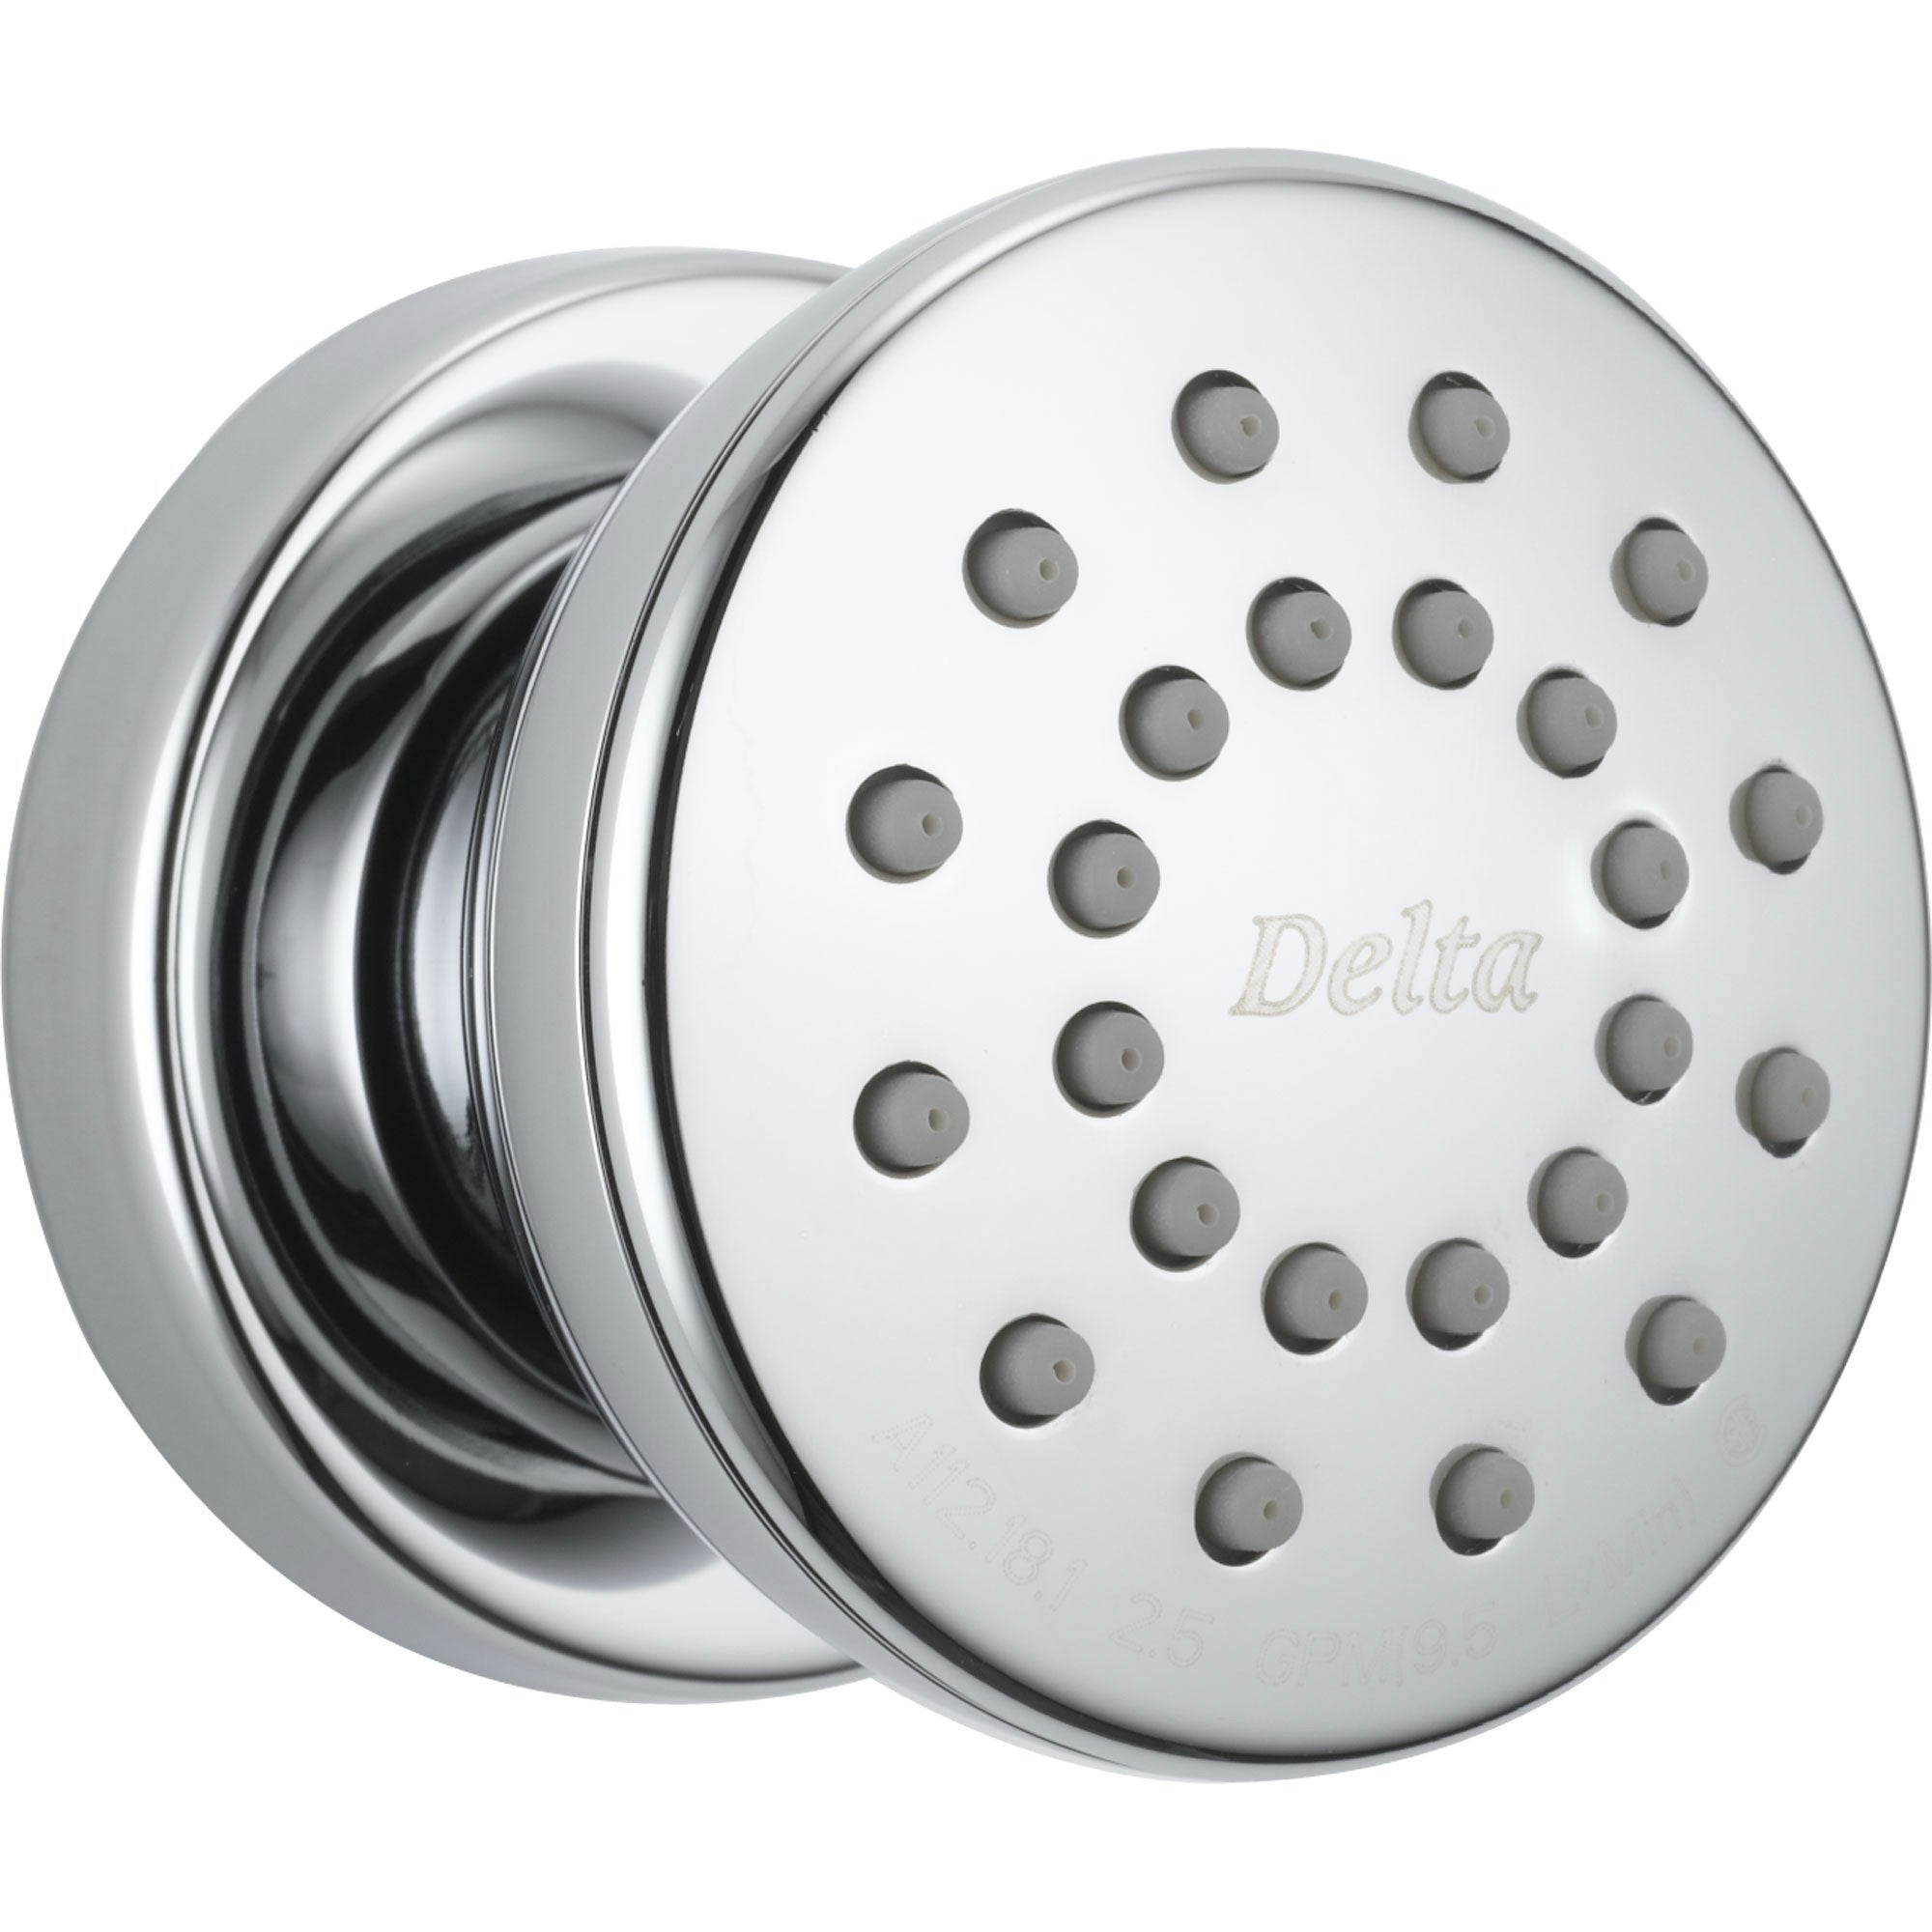 Delta Classic Round Shower Body Jet in Chrome featuring H2Okinetic 608651